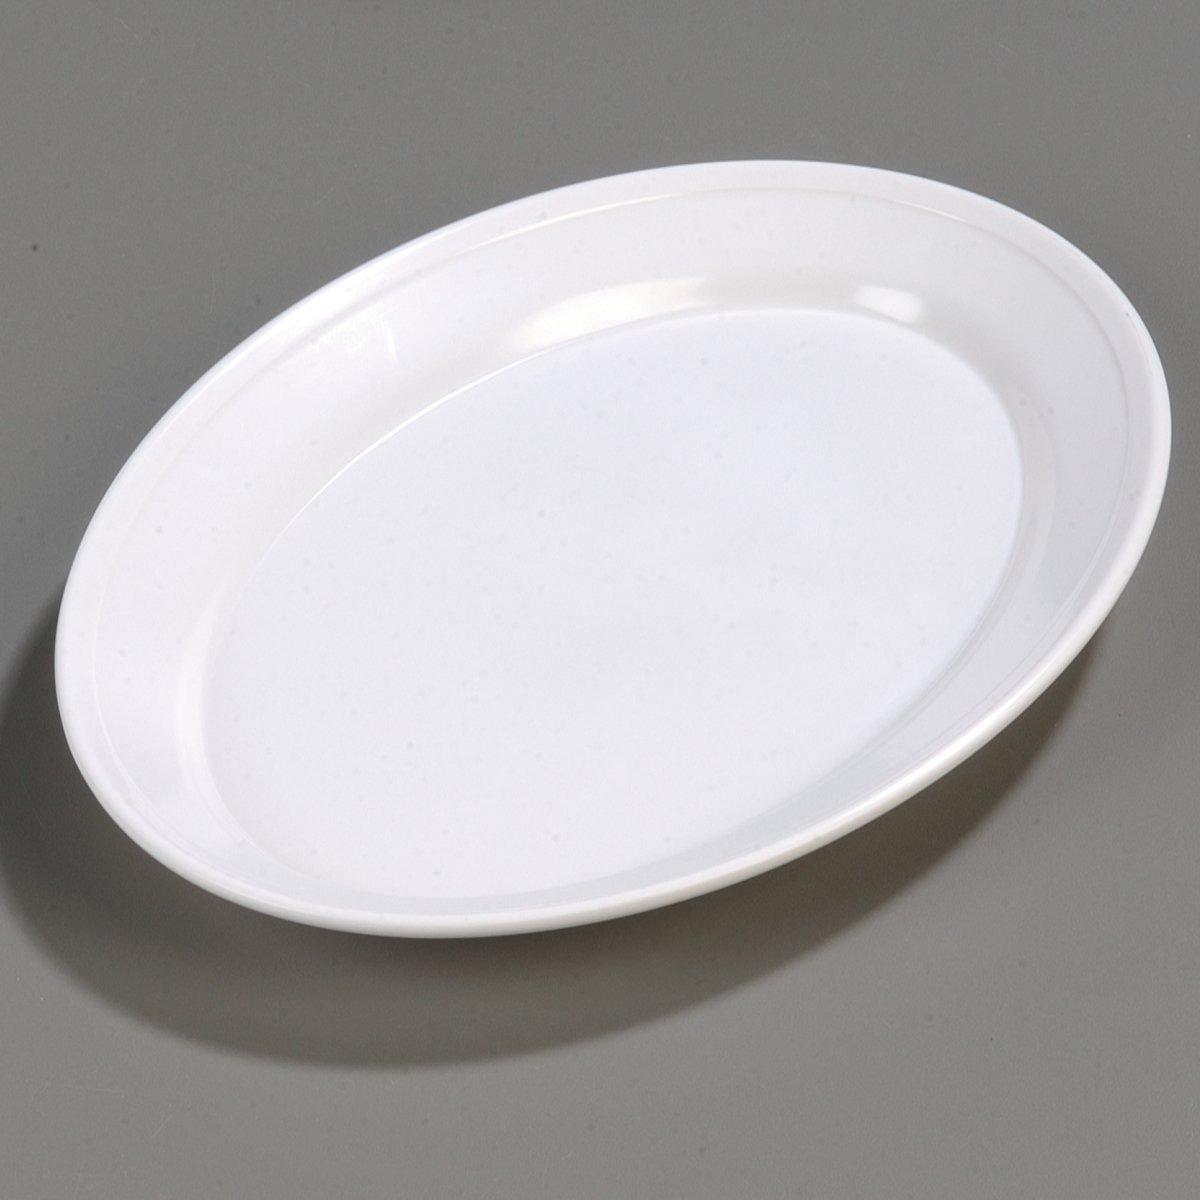 Amazon Com Carlisle Arr12002 Melamine Oval Platter 12 X 8 5 X 1 07 White Case Of 12 Industrial Scientific